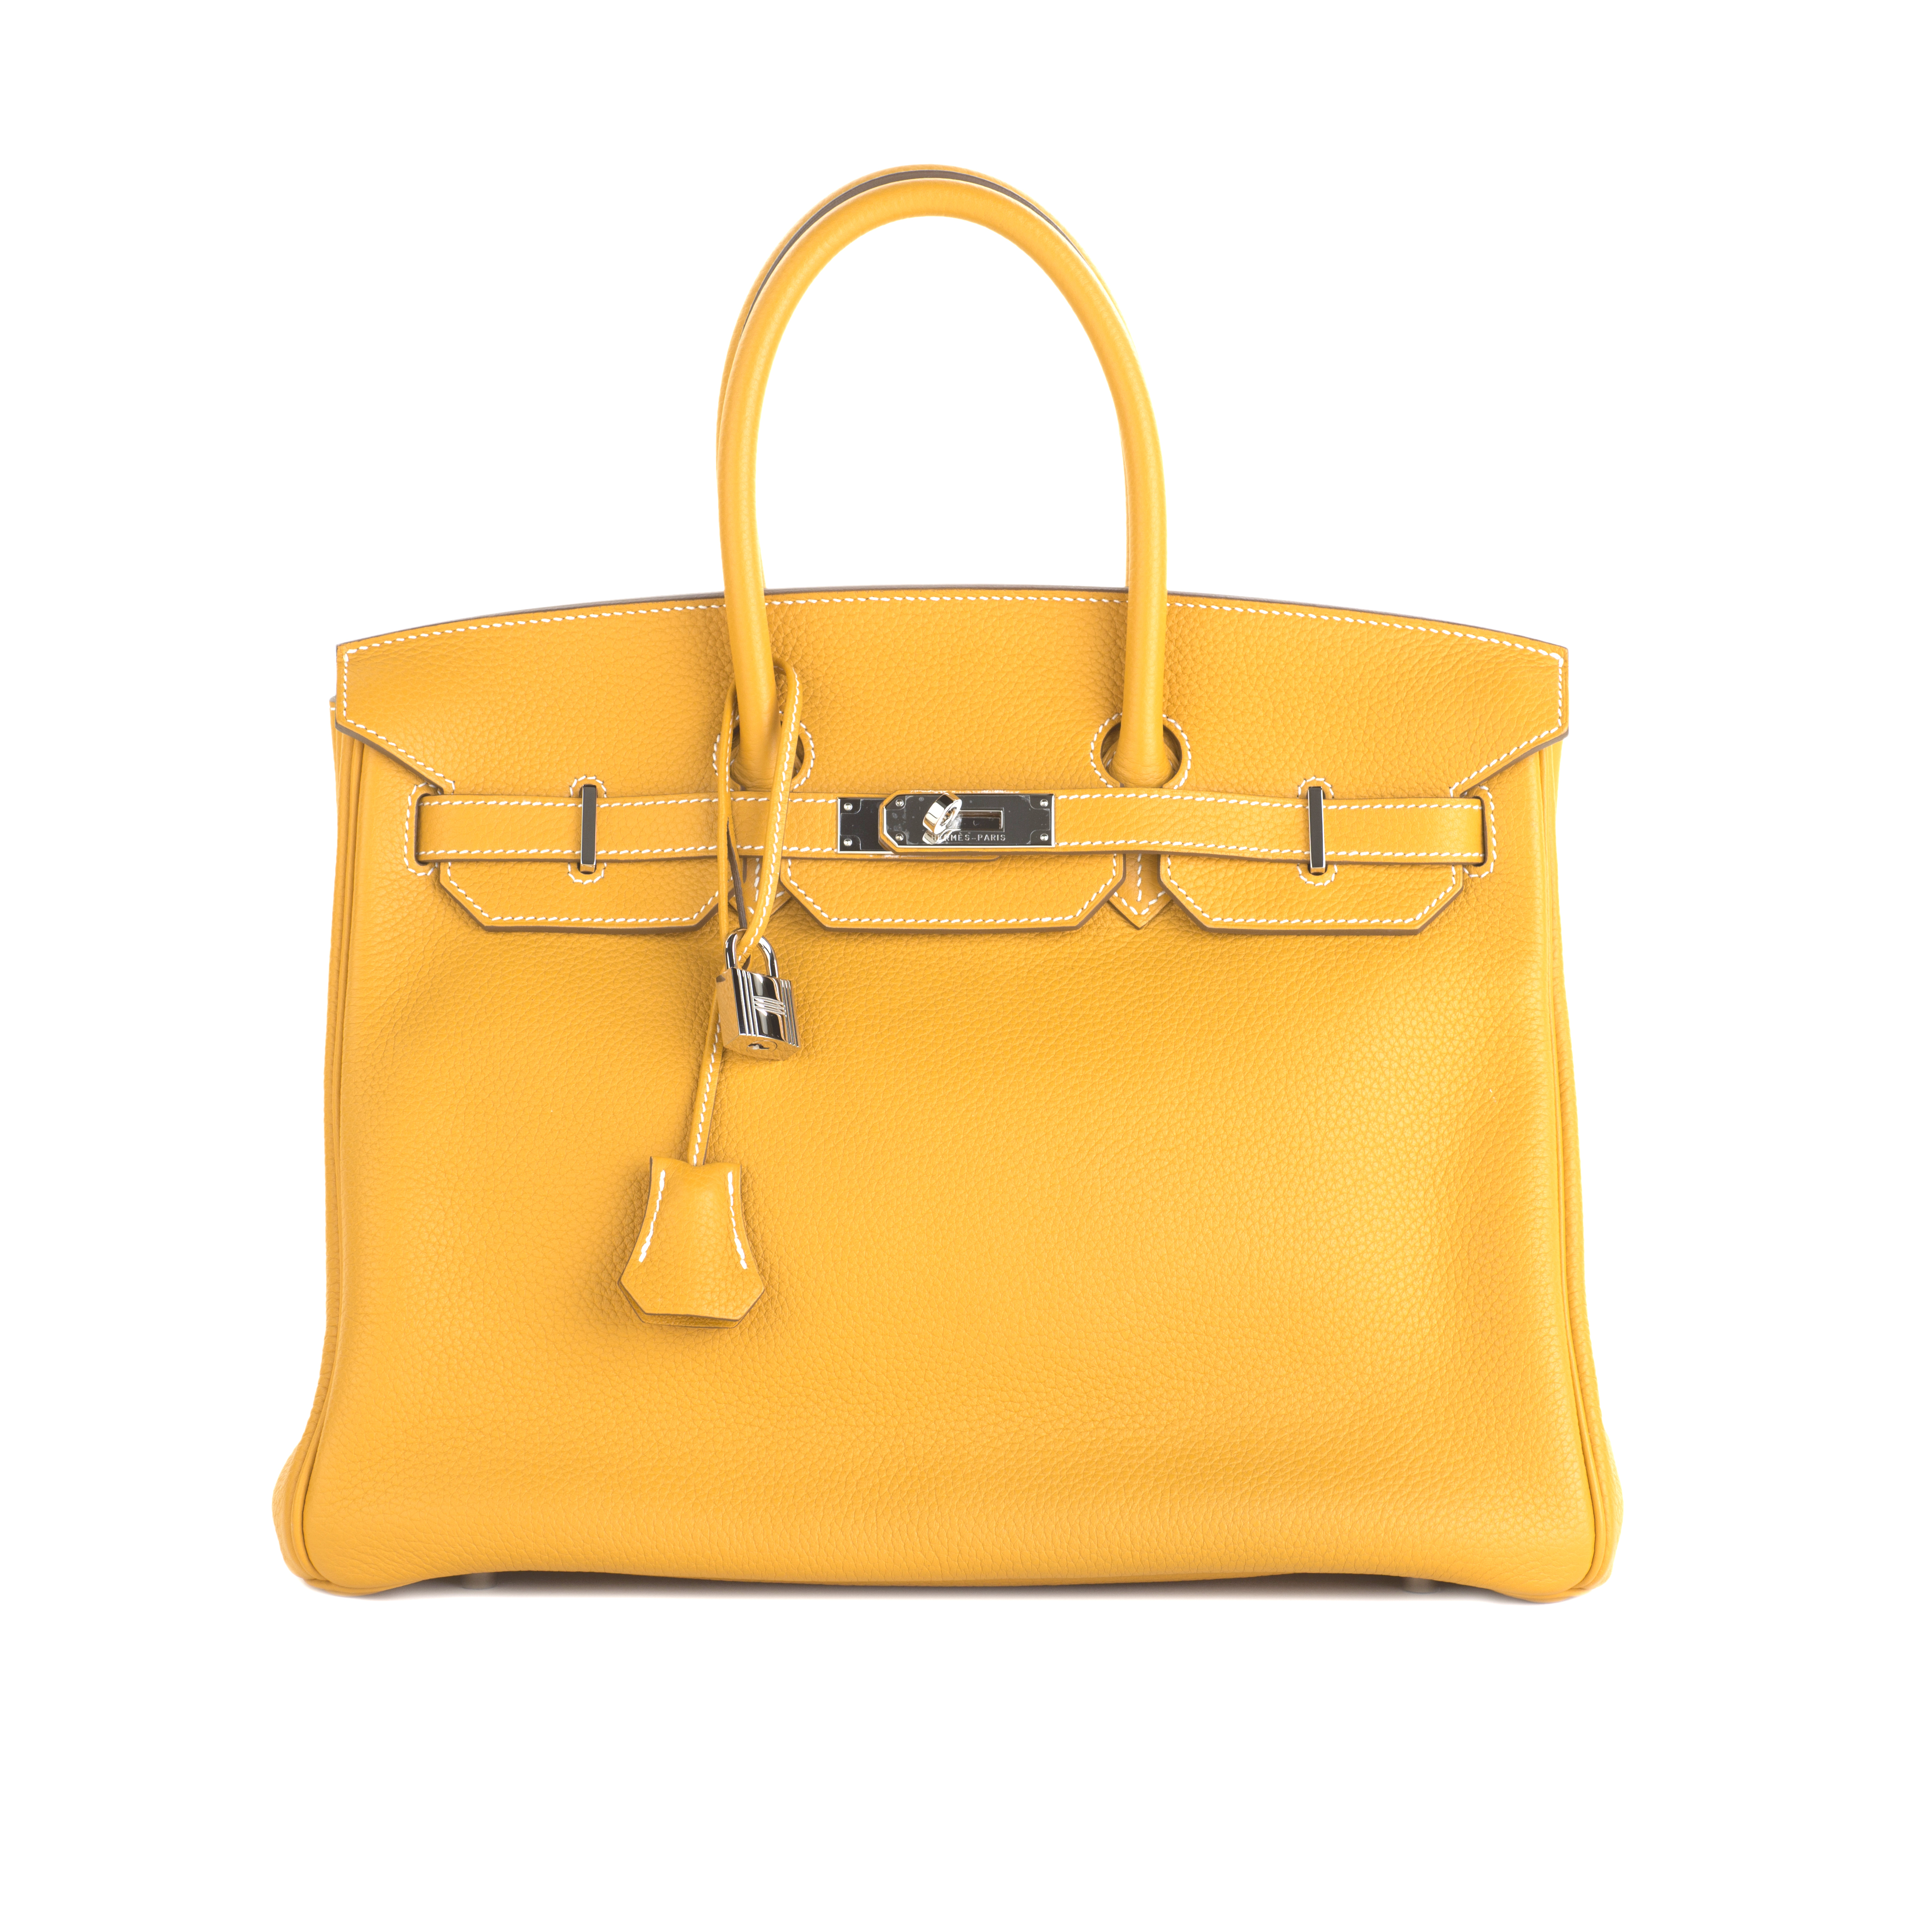 View full screen - View 1 of Lot 704. HERMÈS   JAUNE BIRKIN 35 IN TAURILLON CLEMENCE LEATHER WITH PALLADIUM HARDWARE, 2012.